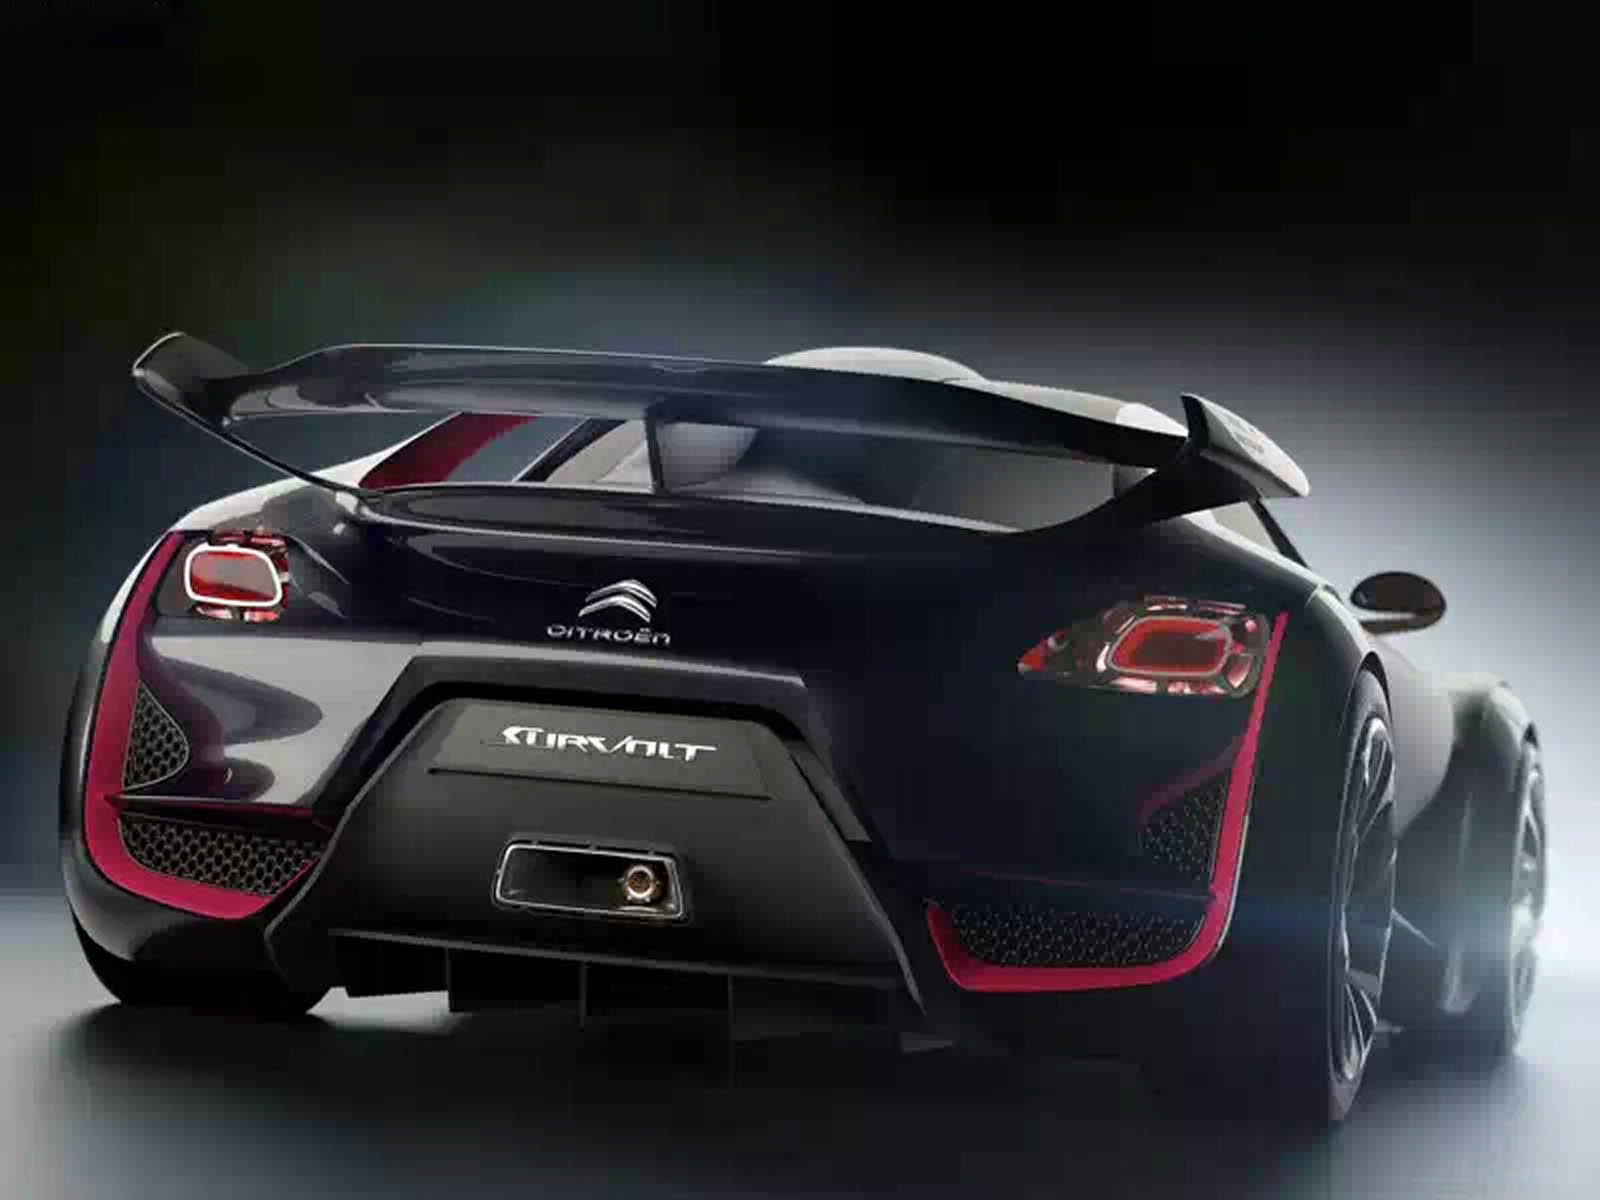 wallpapers: Citroen Survolt Concept Car Wallpapers